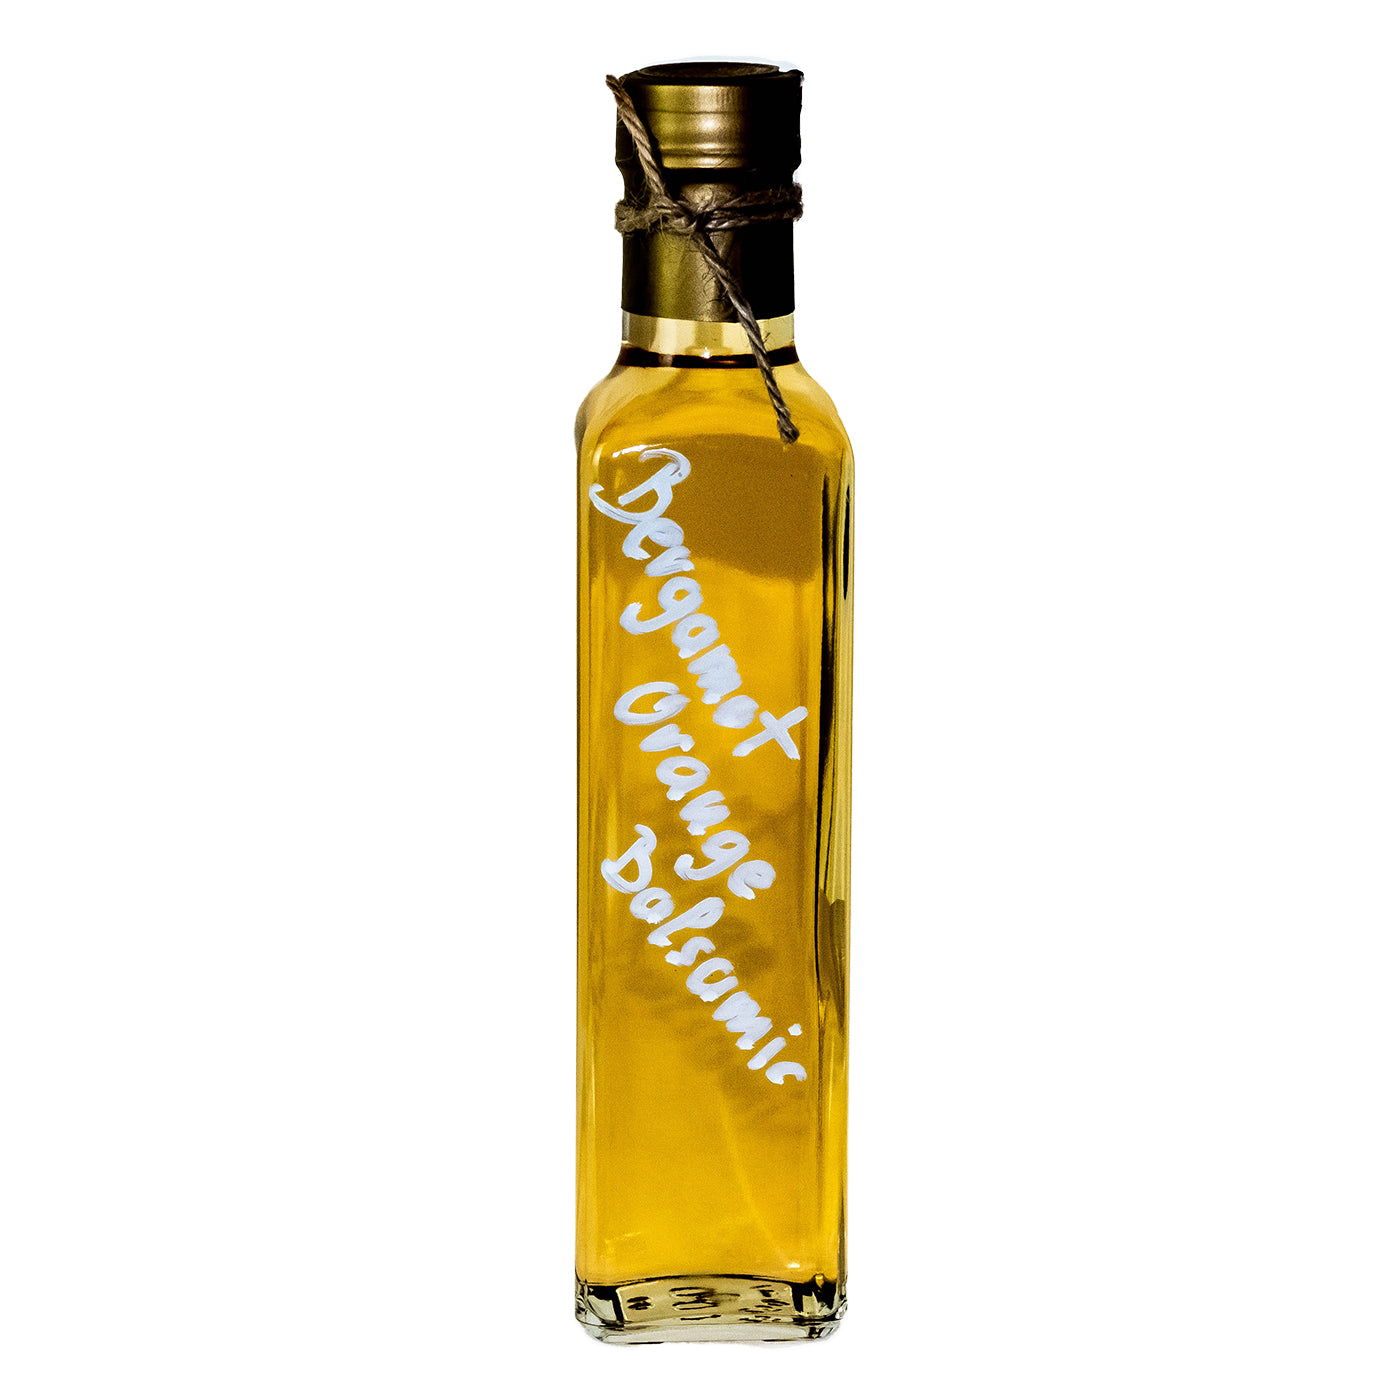 Bergamot Orange Balsamic